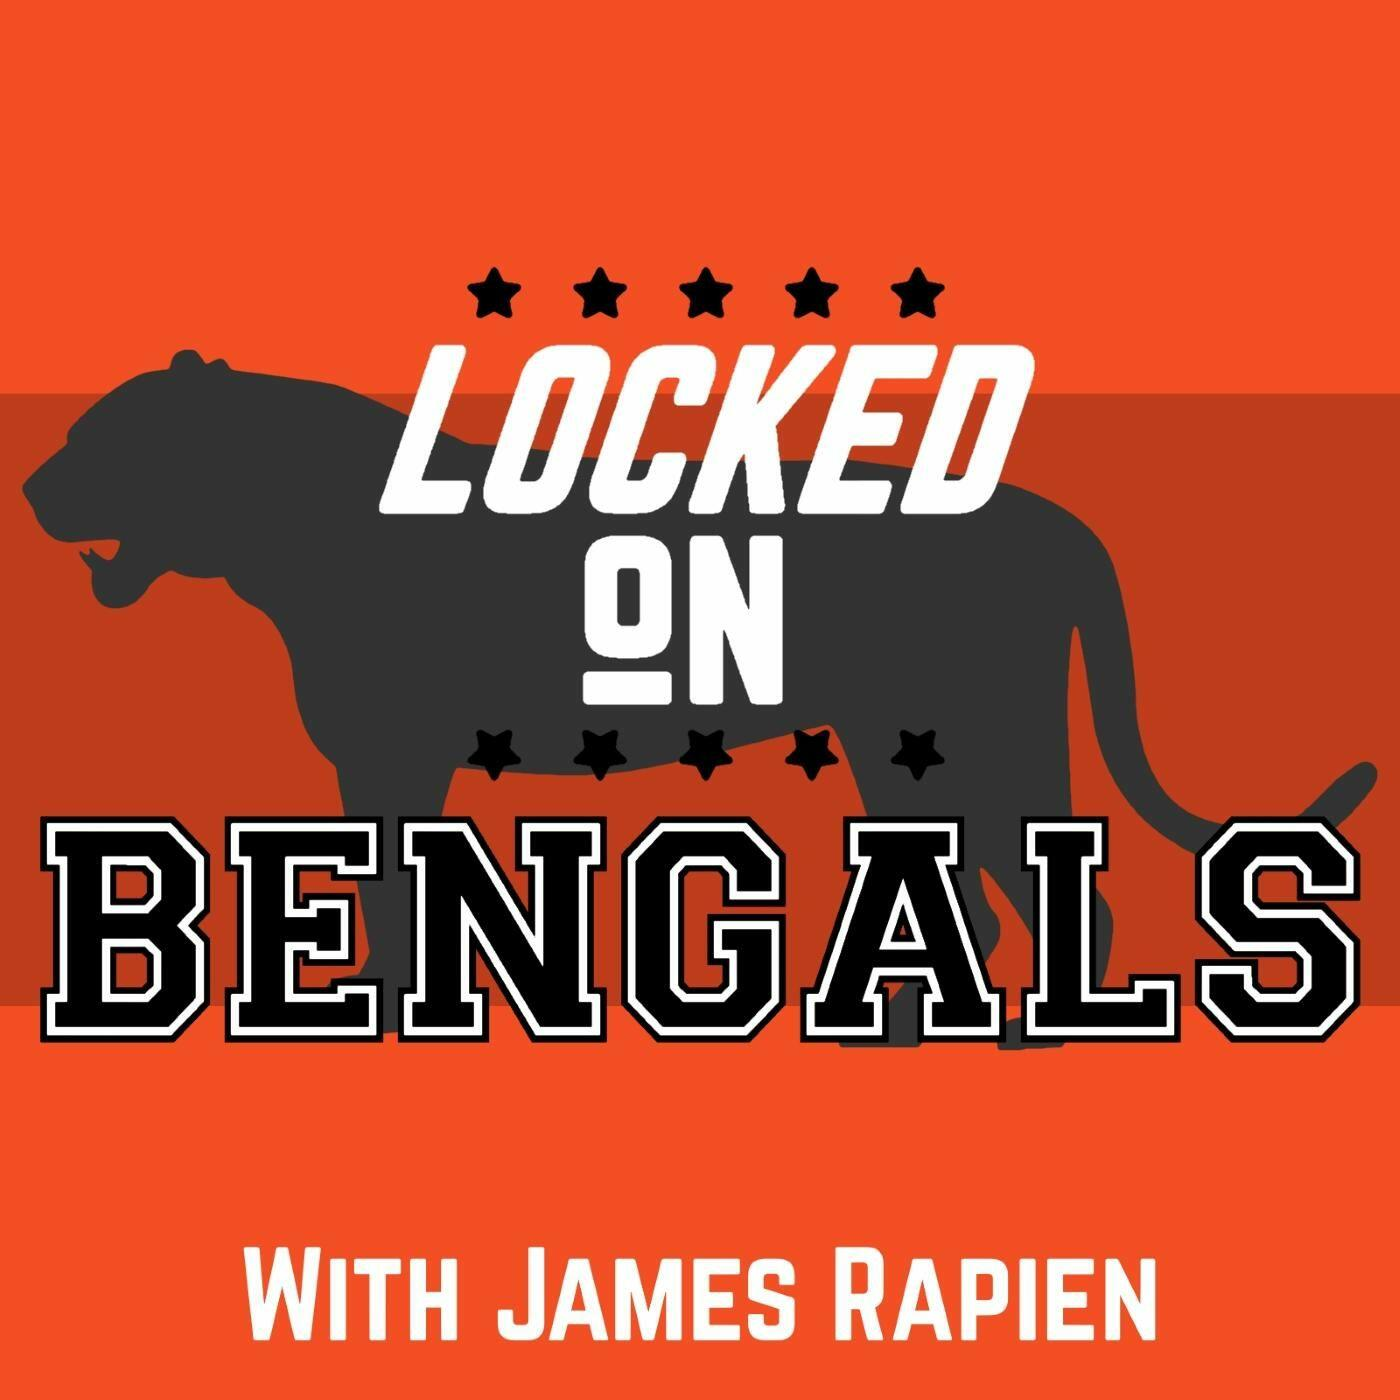 Listen to Locked on Bengals - 11/13/18 Hue's back, plus Lapham joins the podcast   Locked on Bengals with James Rapien   Podcasts